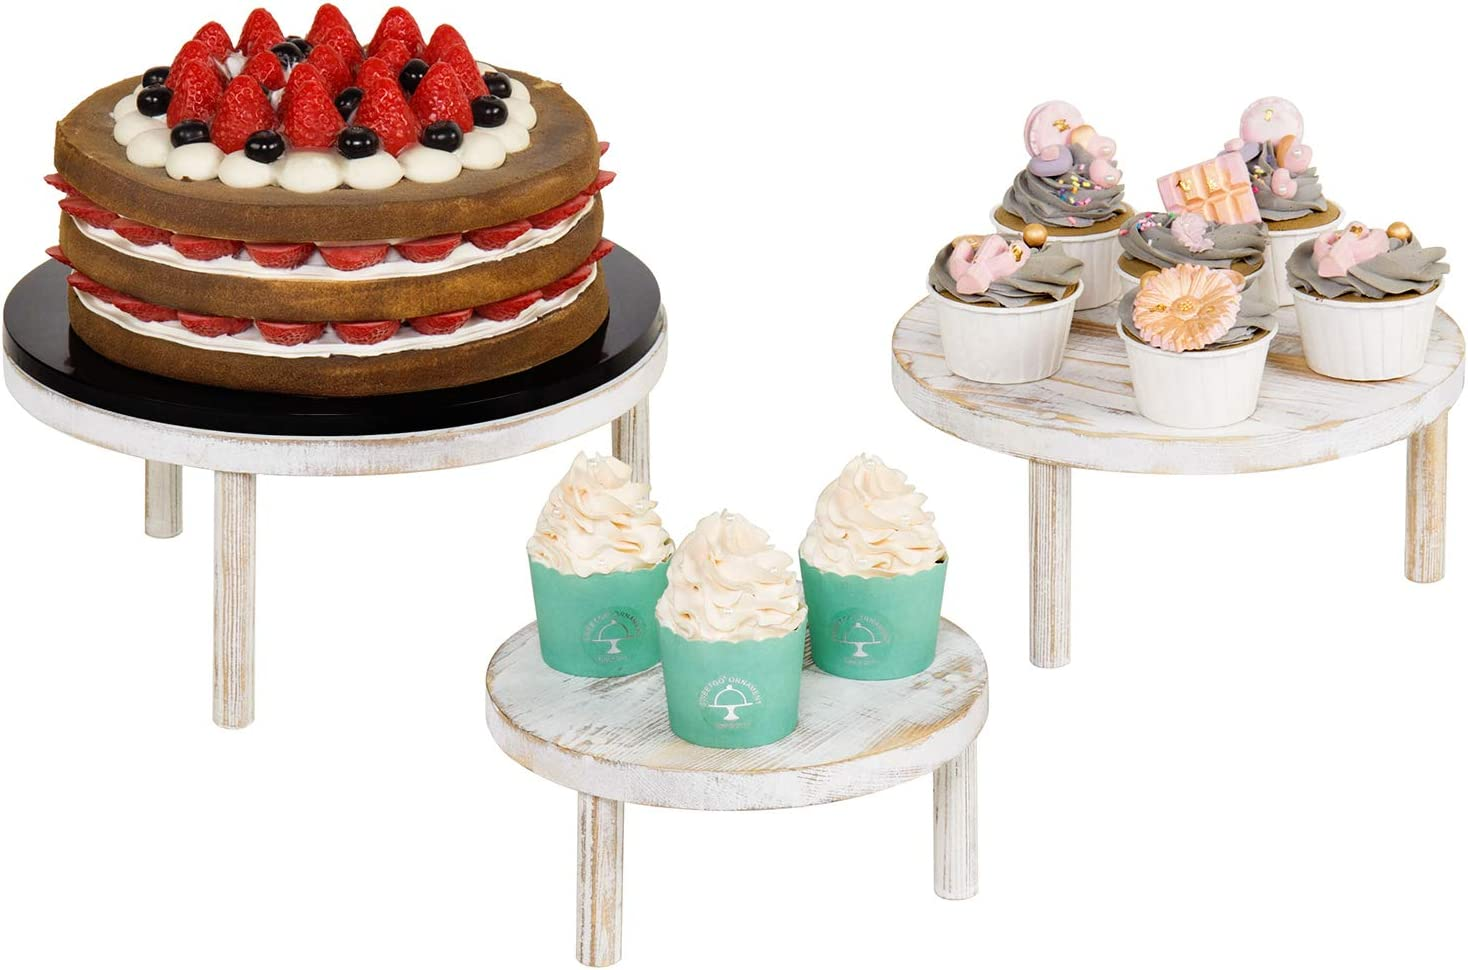 MyGift Shabby Whitewashed Wood Round Dessert and Bakery Retail Display Riser Stands, Set of 3